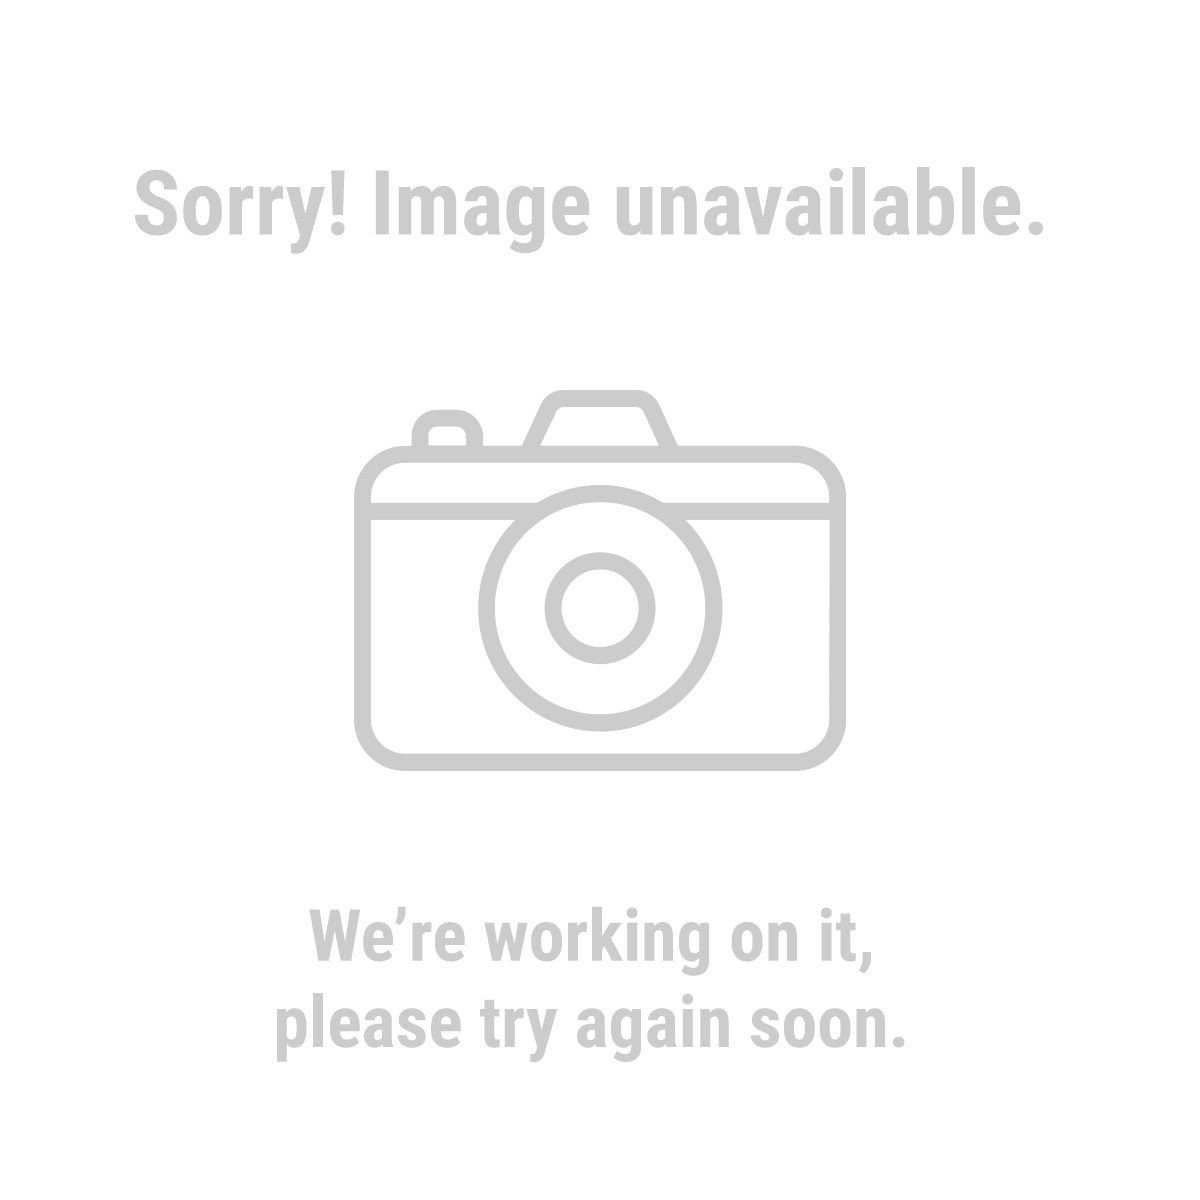 HFT® 61764 4 ft. 6 in. x 6 ft. 6 in. Camouflage All Purpose/Weather Resistant Tarp